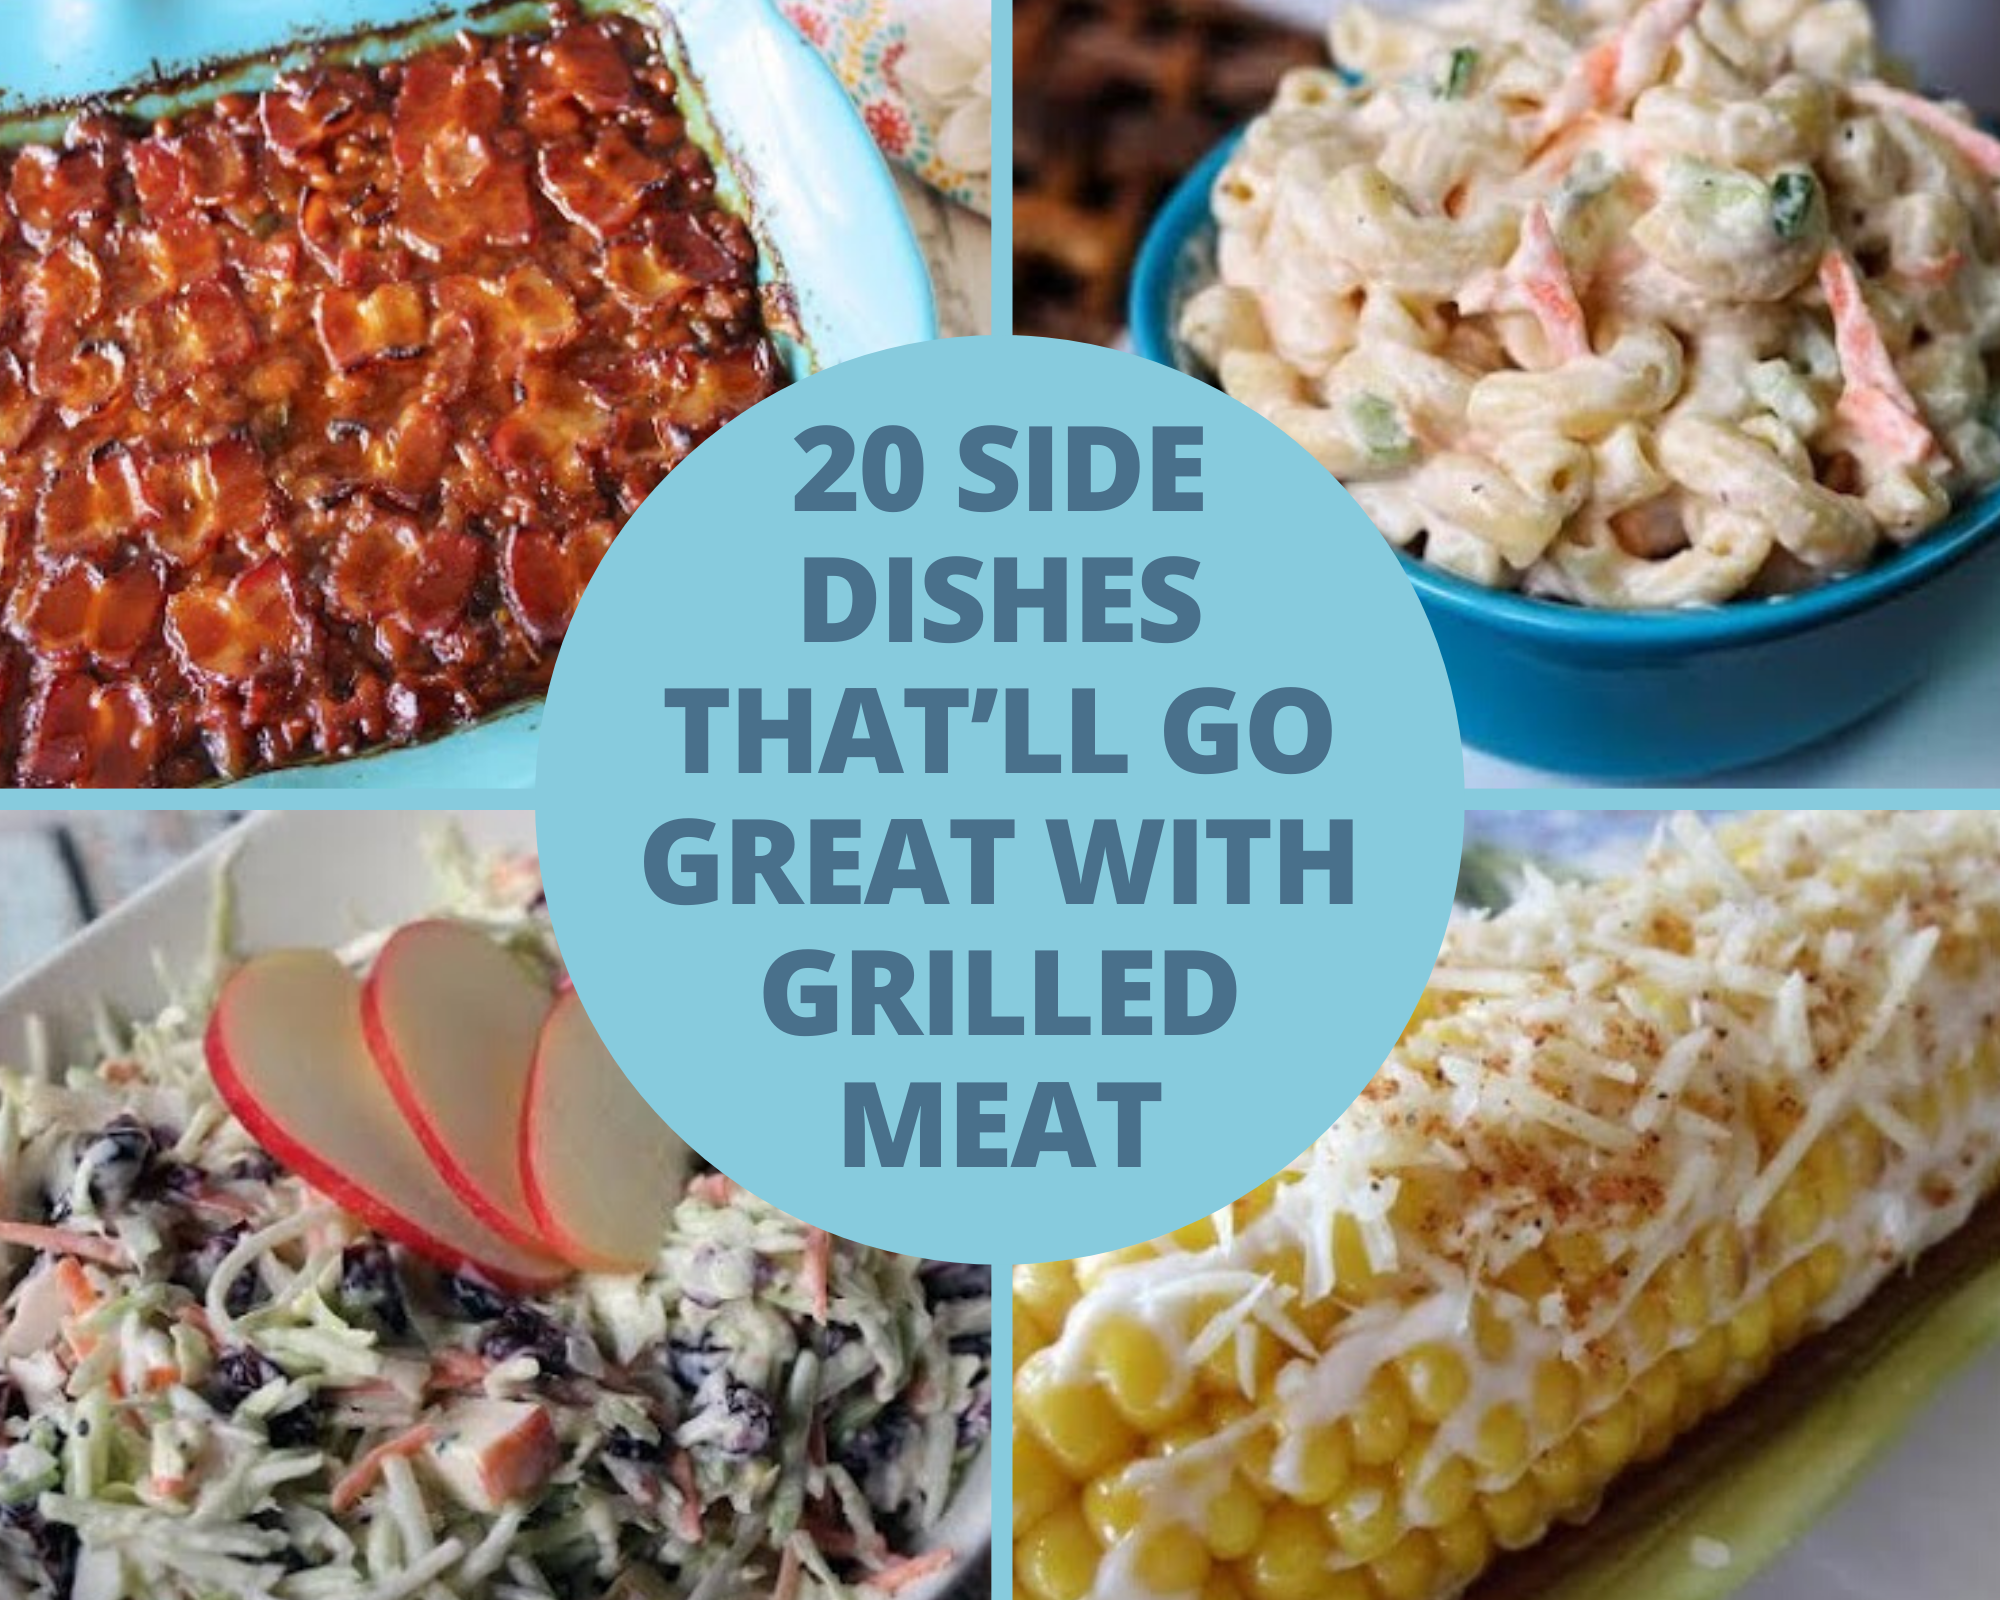 Baked beans, macaroni salad, coleslaw, corn on the cob and more!